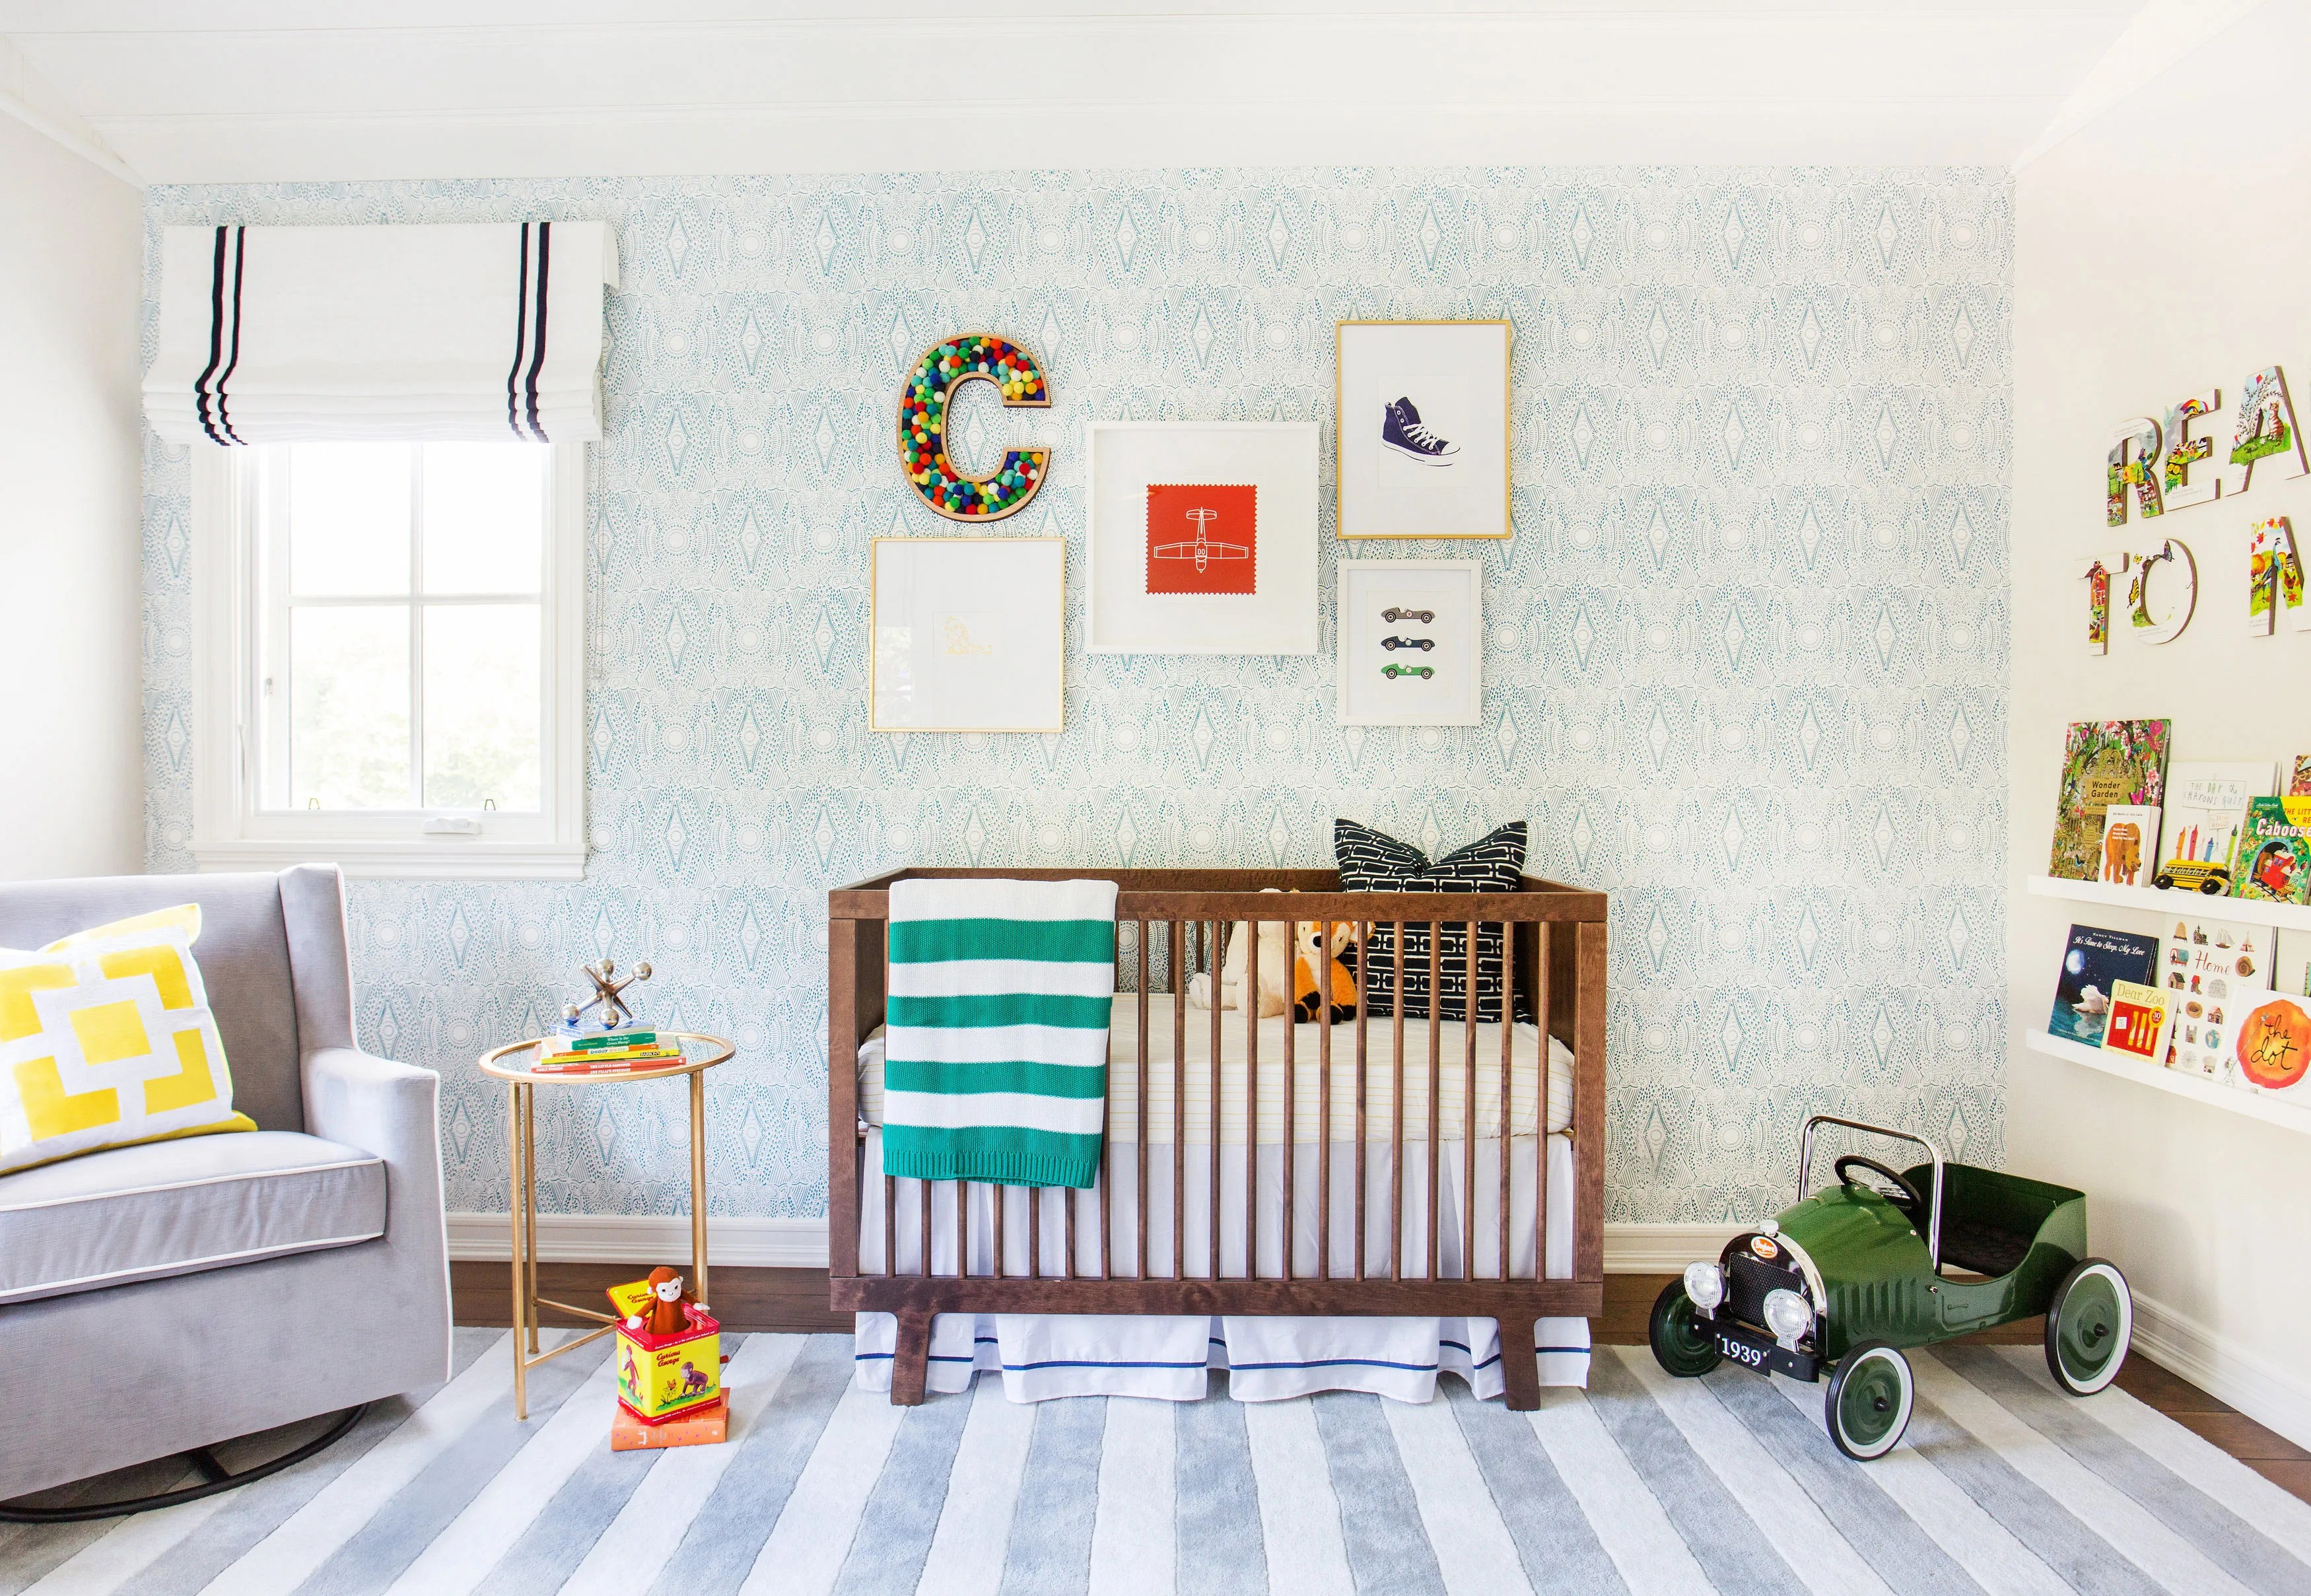 3 Wall Decor Ideas Perfect for Kids Rooms Photos  Architectural Digest